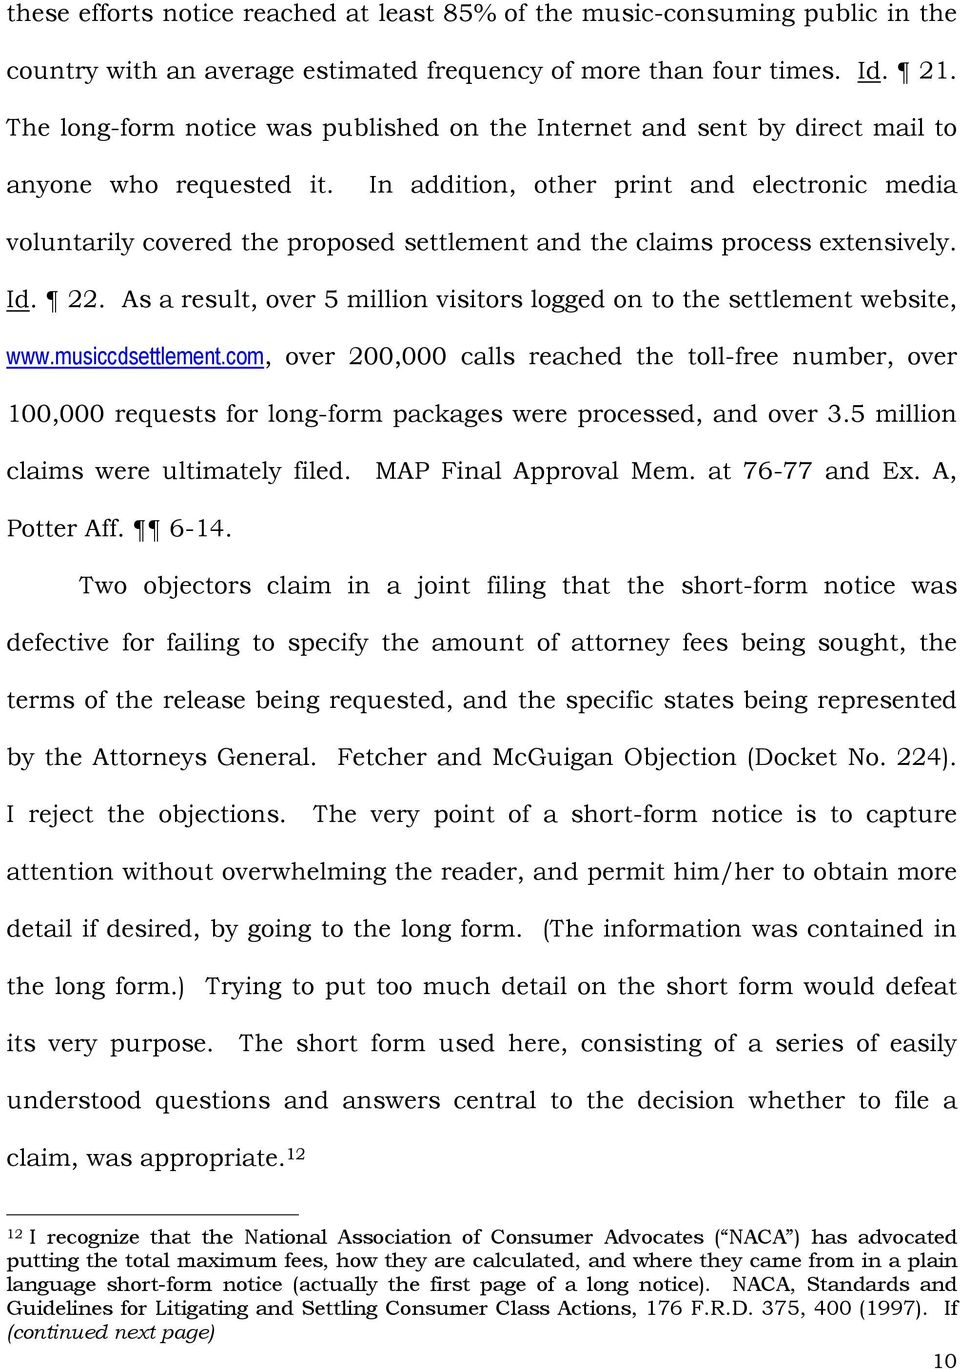 In addition, other print and electronic media voluntarily covered the proposed settlement and the claims process extensively. Id. 22.